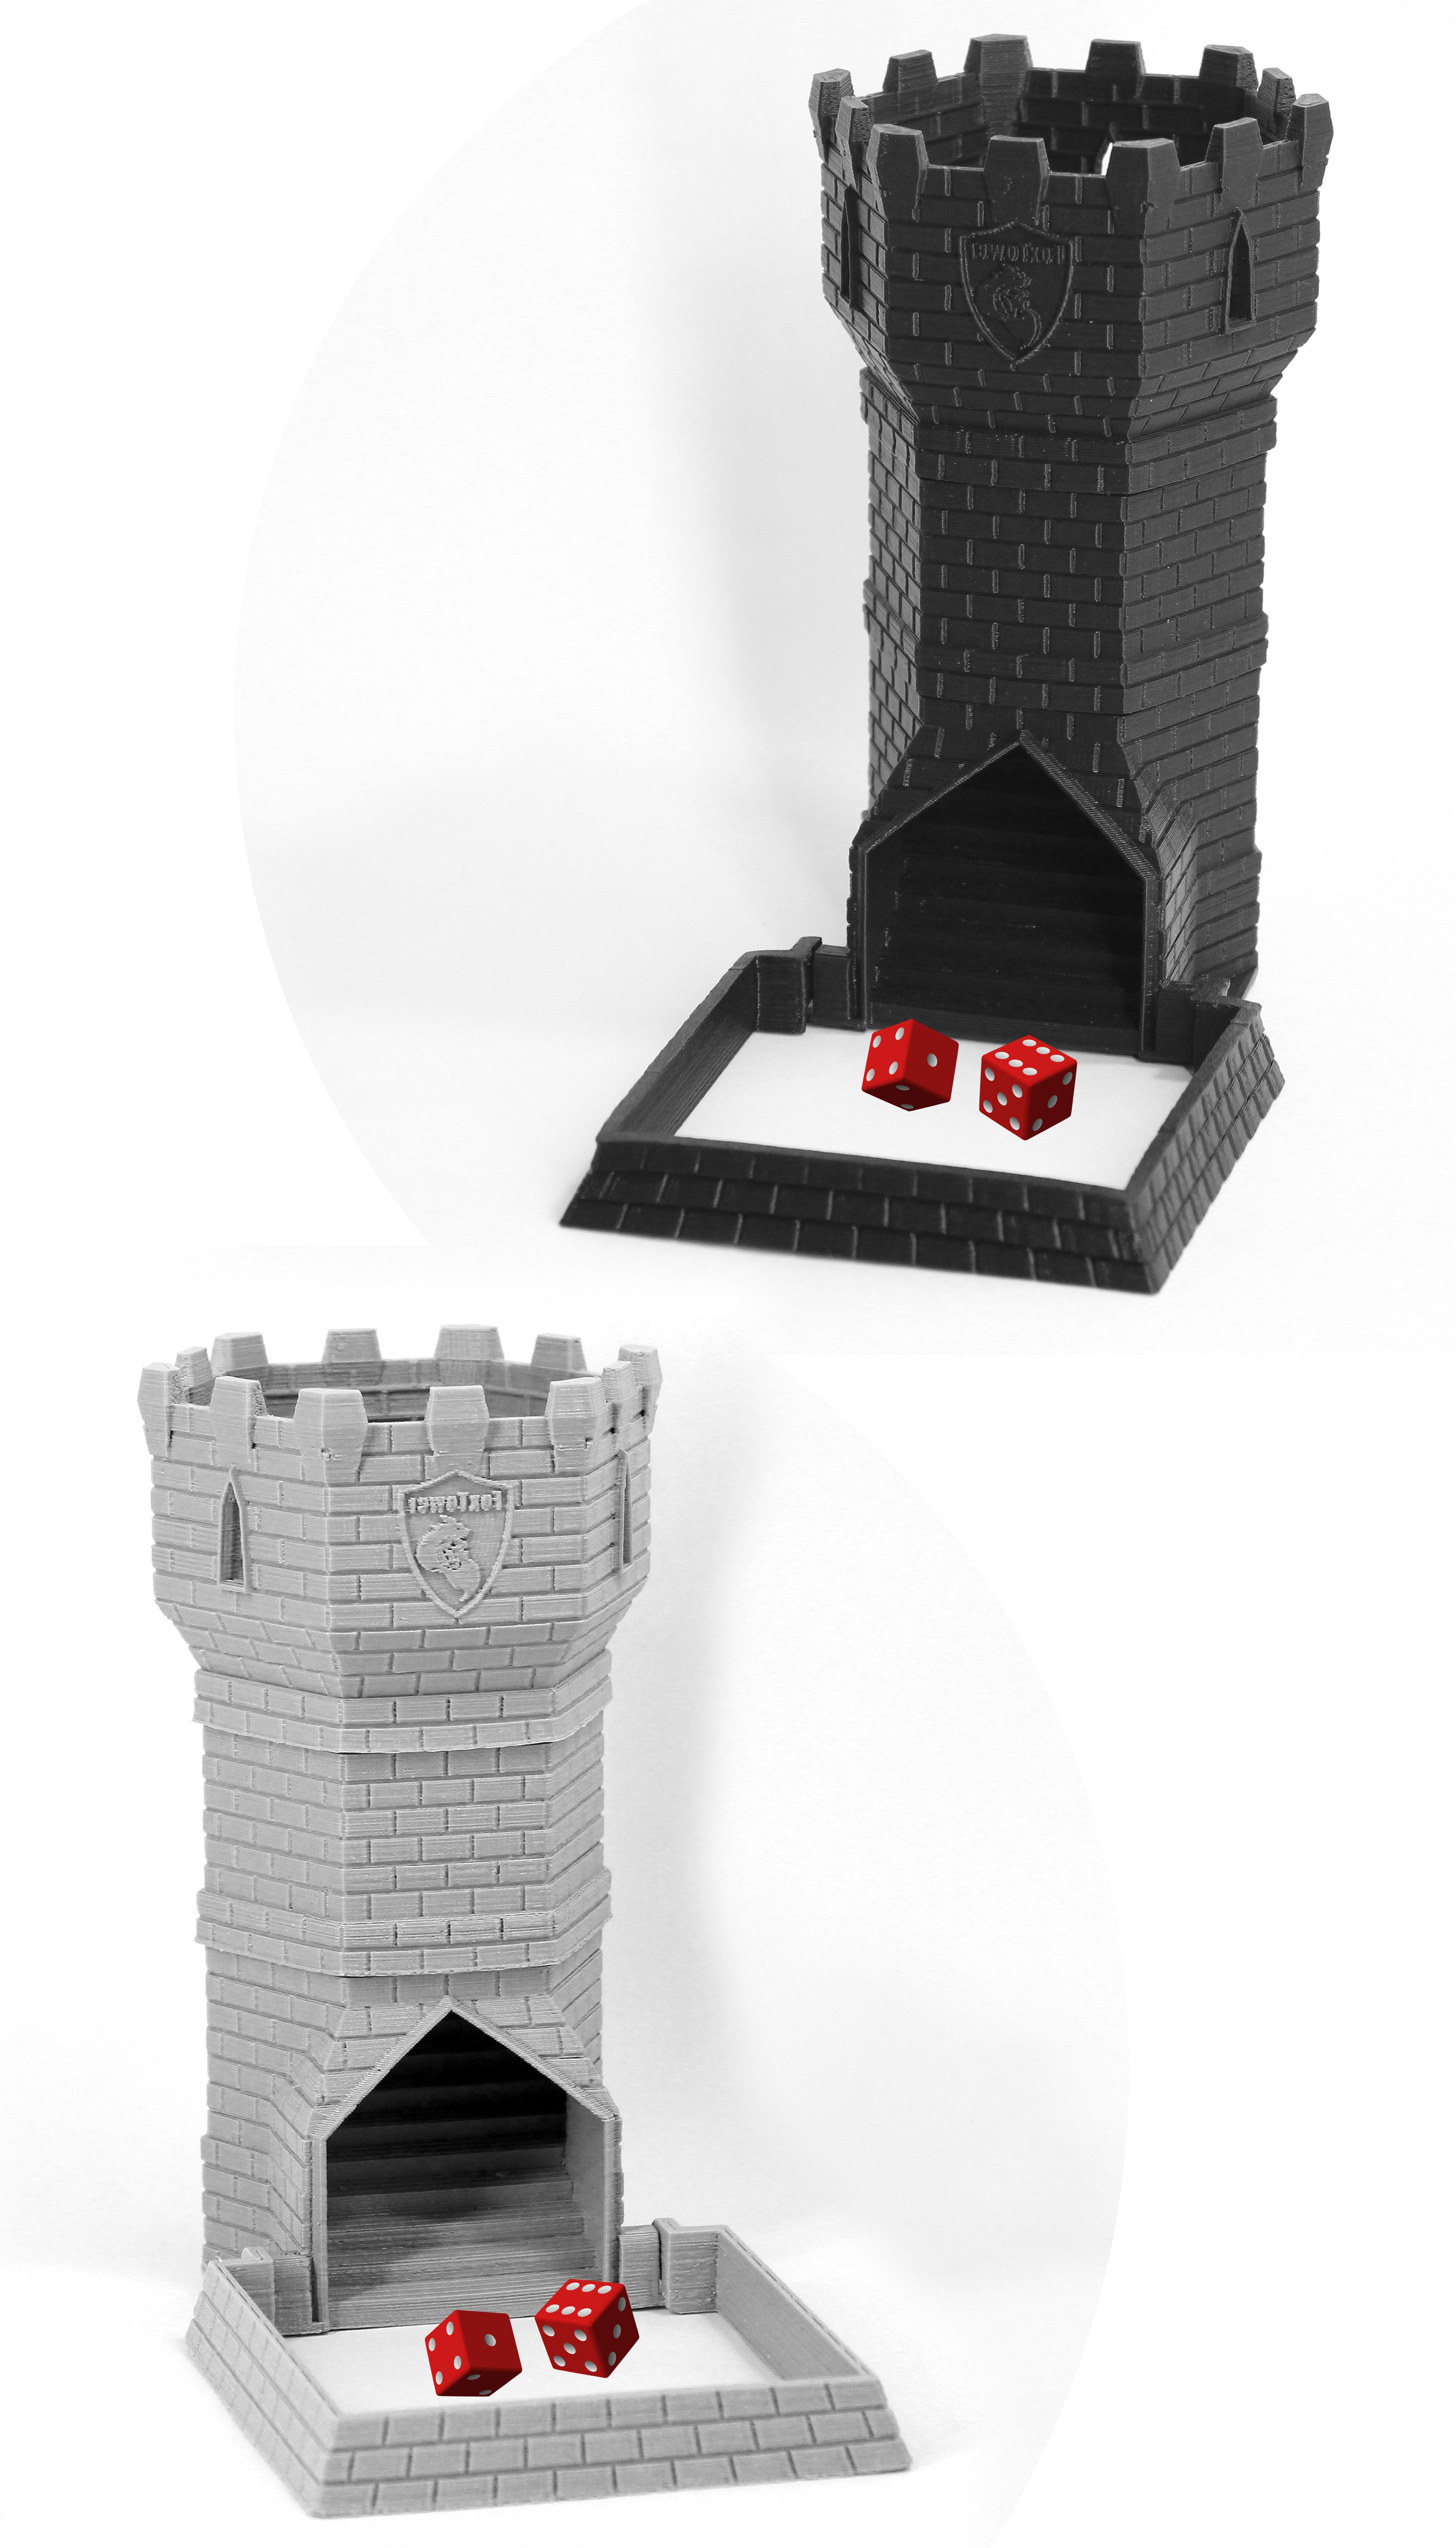 FoxTower, Normal Size Dice Tower for RPGs and Board Games